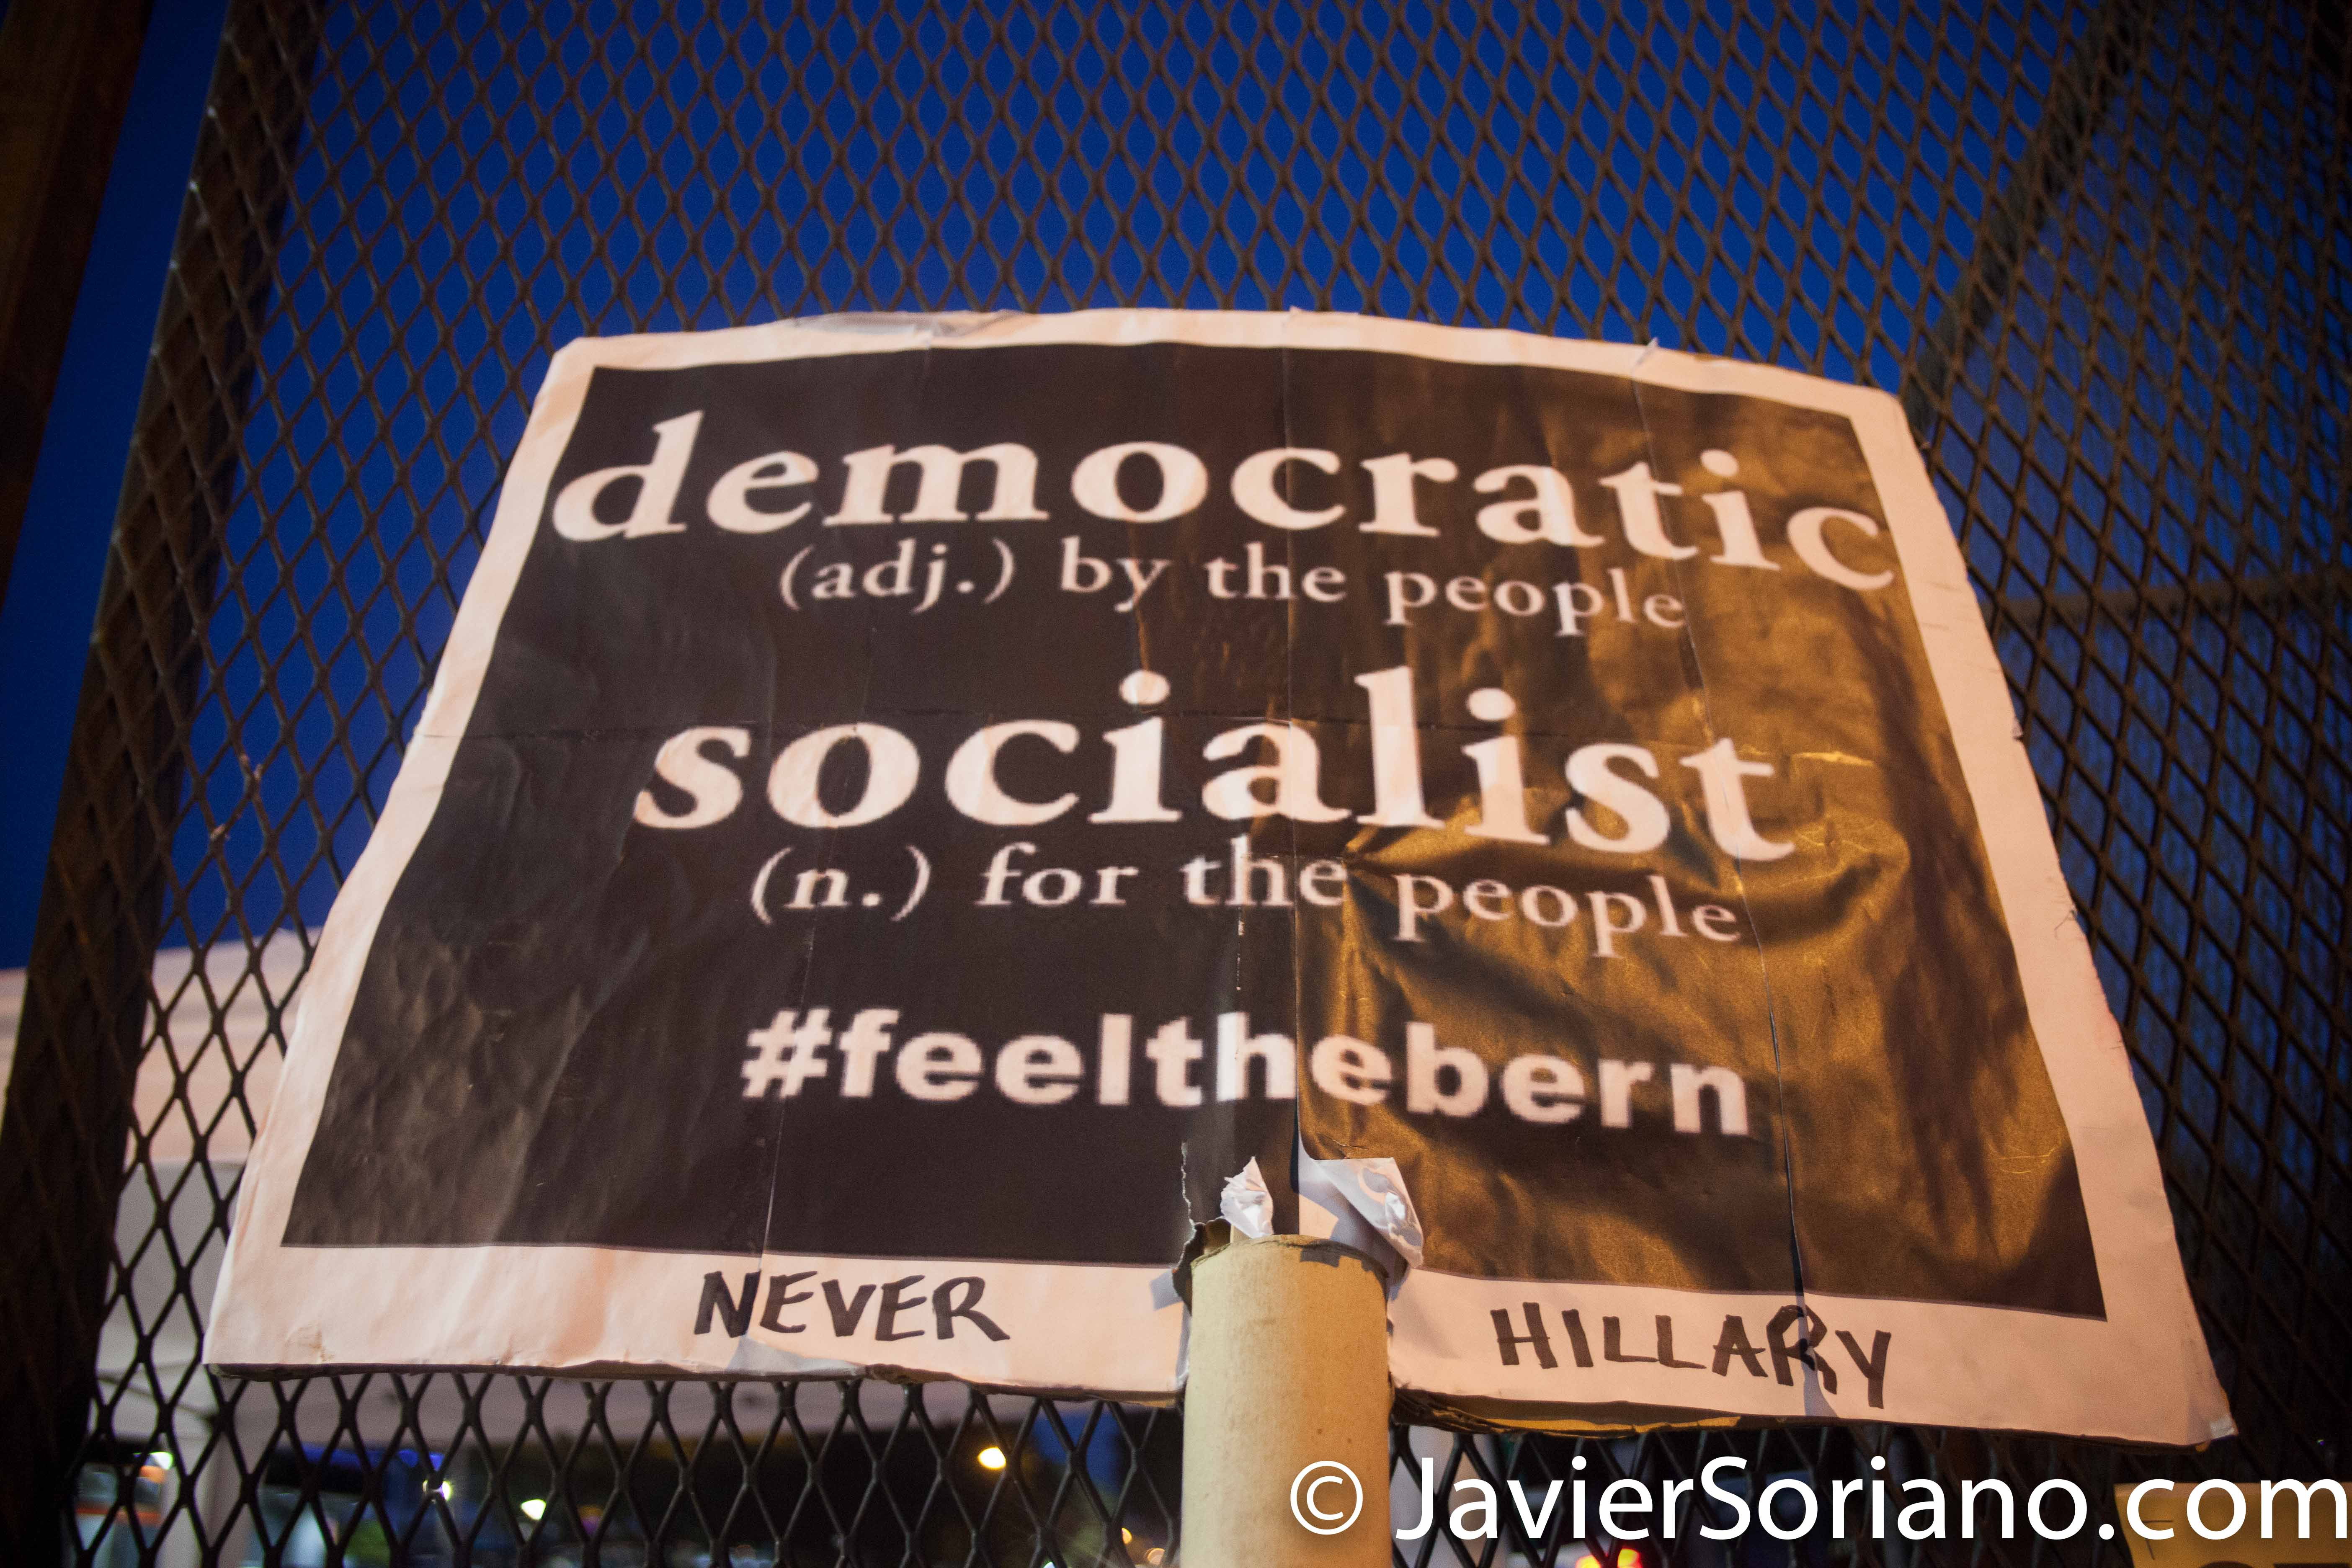 On Tuesday, July 26th, 2016, hundreds of Bernie's supporters and other protesters gathered in Philadelphia, Pennsylvania. Tuesday was the third day of protests against the corrupt DNC, Hillary Clinton and the mainstream media. Photo by Javier Soriano/http://www.JavierSoriano.com/